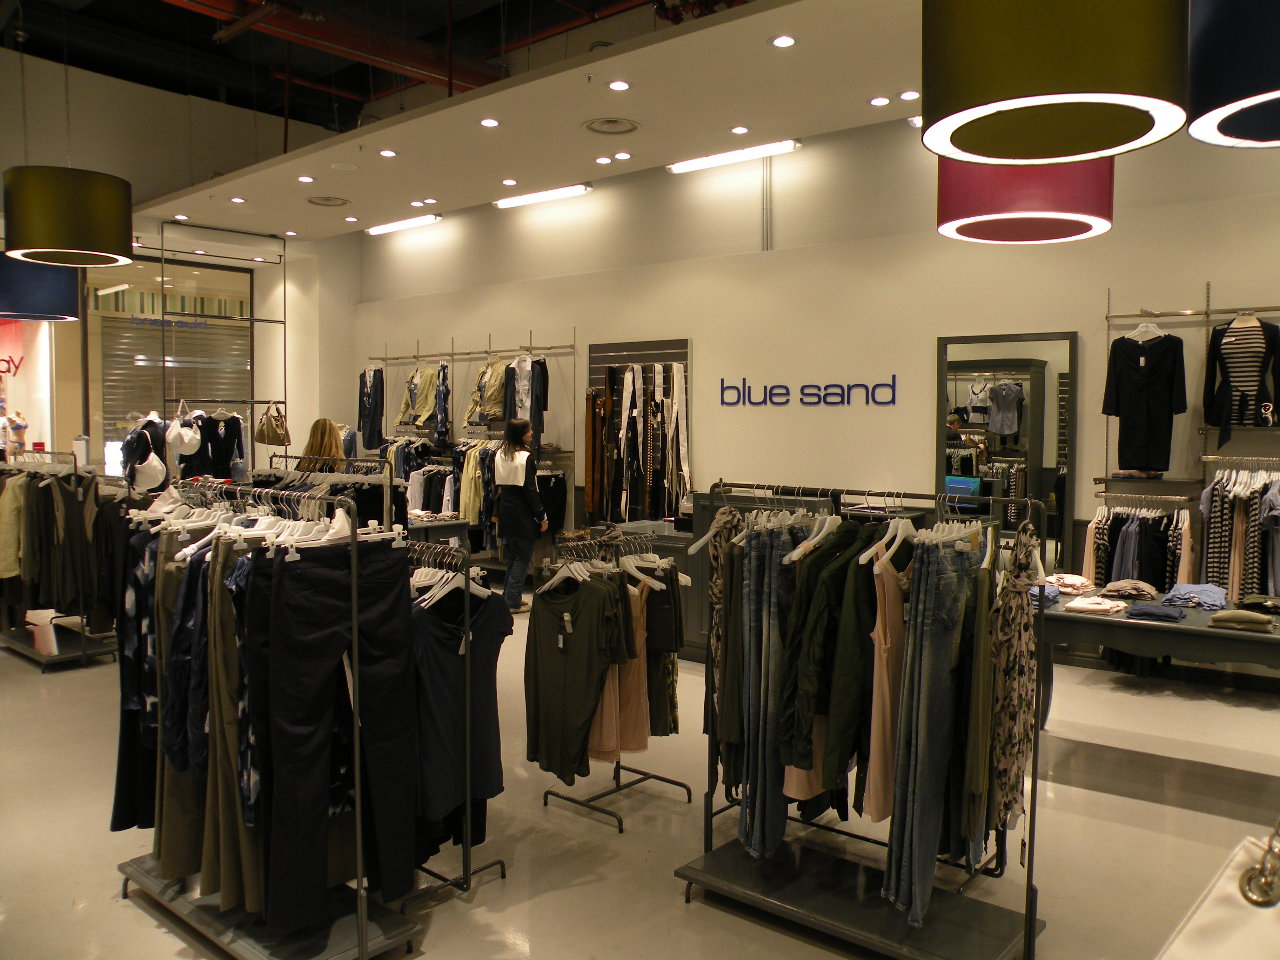 Fashionable clothing stores